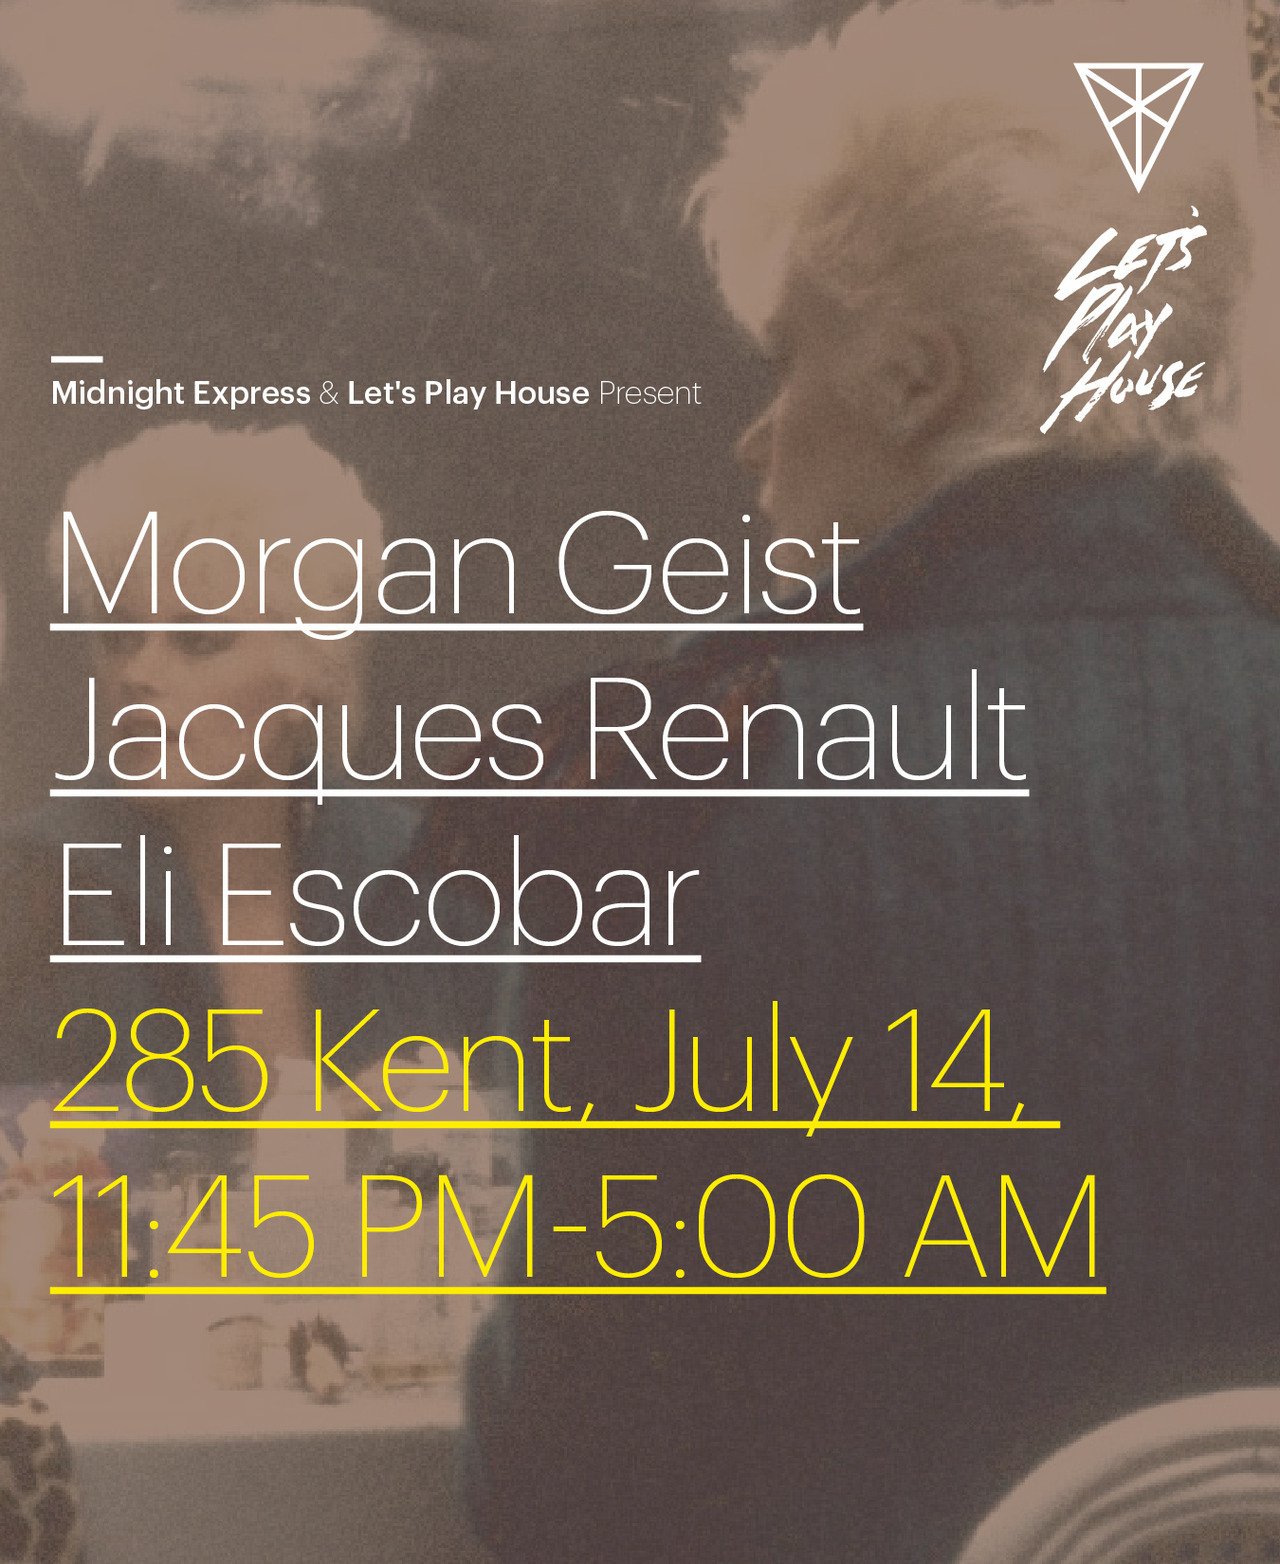 Midnight Express & Let's Play House present Morgan Geist | Jacques Renault | Eli Escobar 7/14 @ 285 Kent, Brooklyn